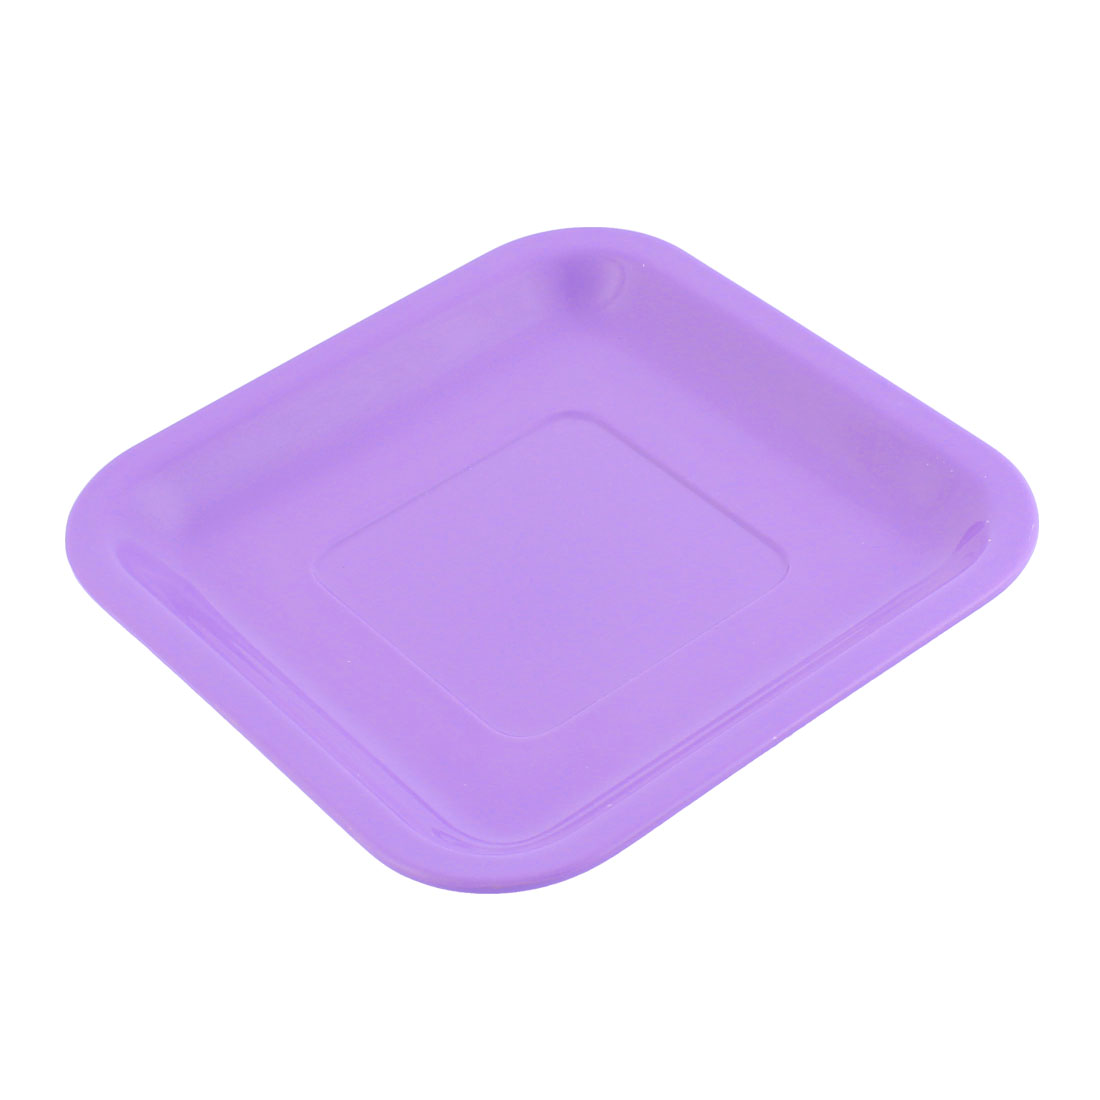 Home Restaurant Plastic Square Shaped Lunch Food Fruit Dish Plate Tray Purple